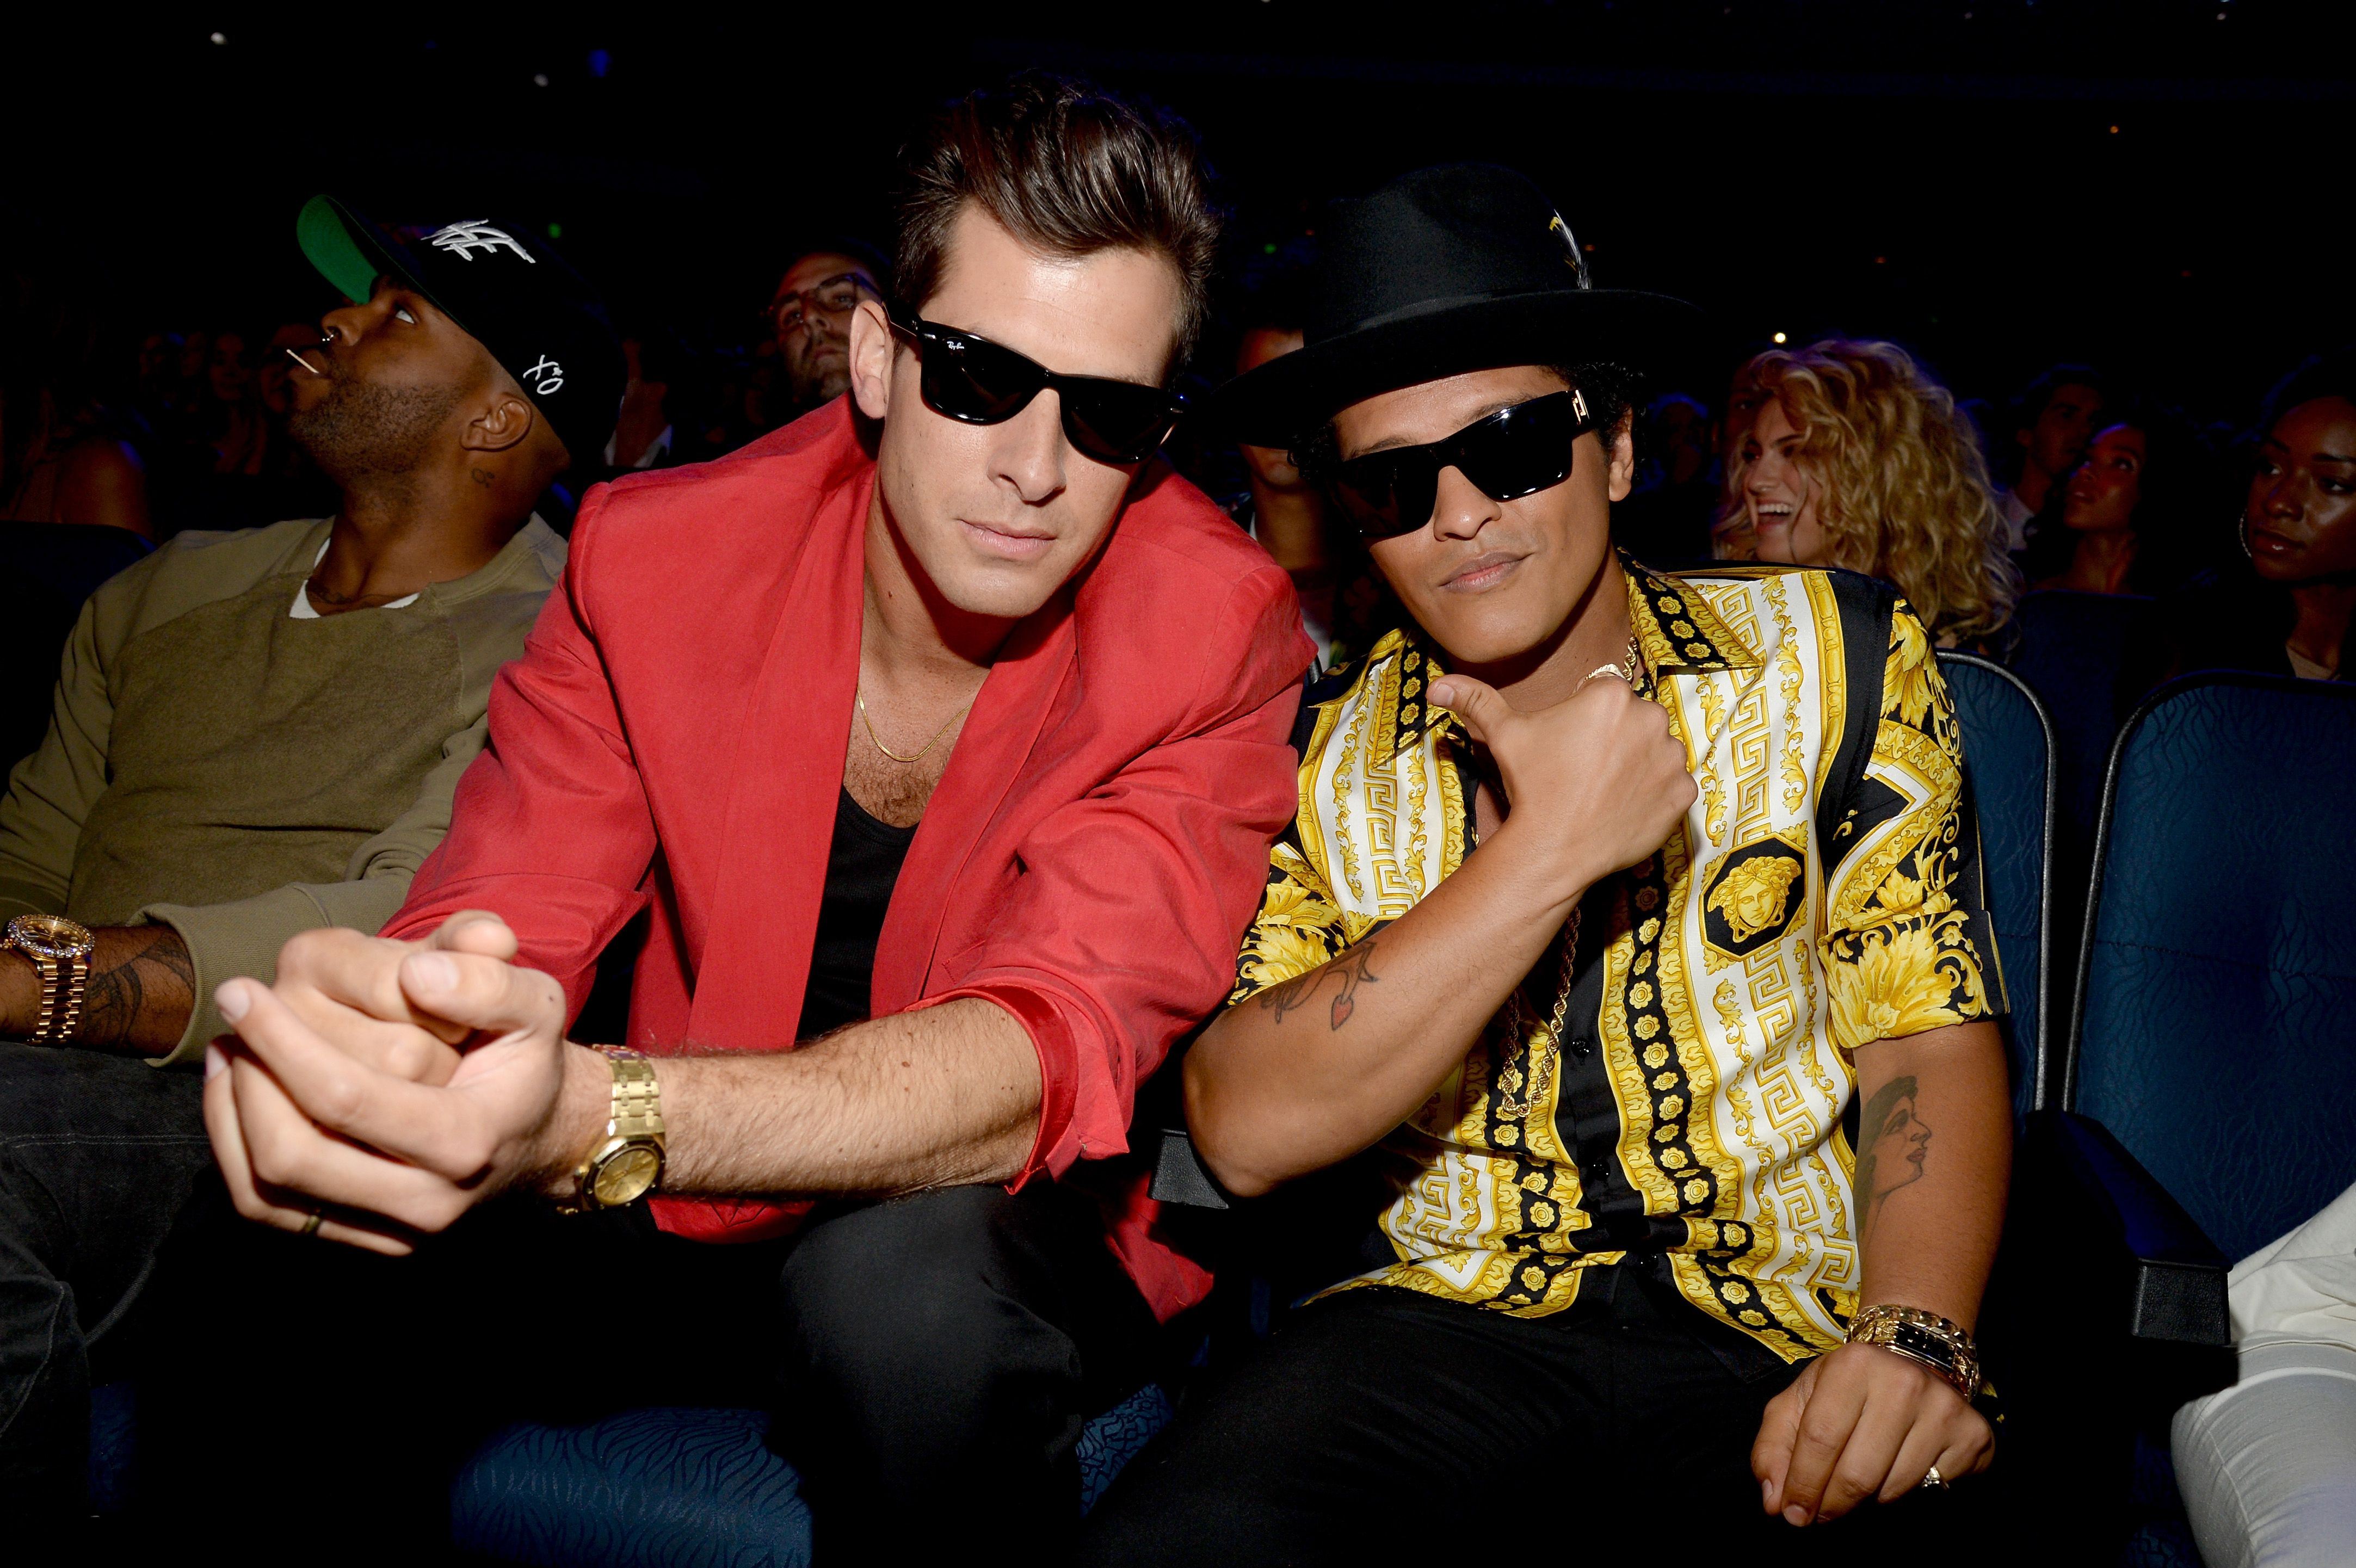 Mark Ronson and Bruno Mars attend the 2015 MTV Video Music Awards at Microsoft Theater in Los Angeles, Calif. on Aug.30, 2015.